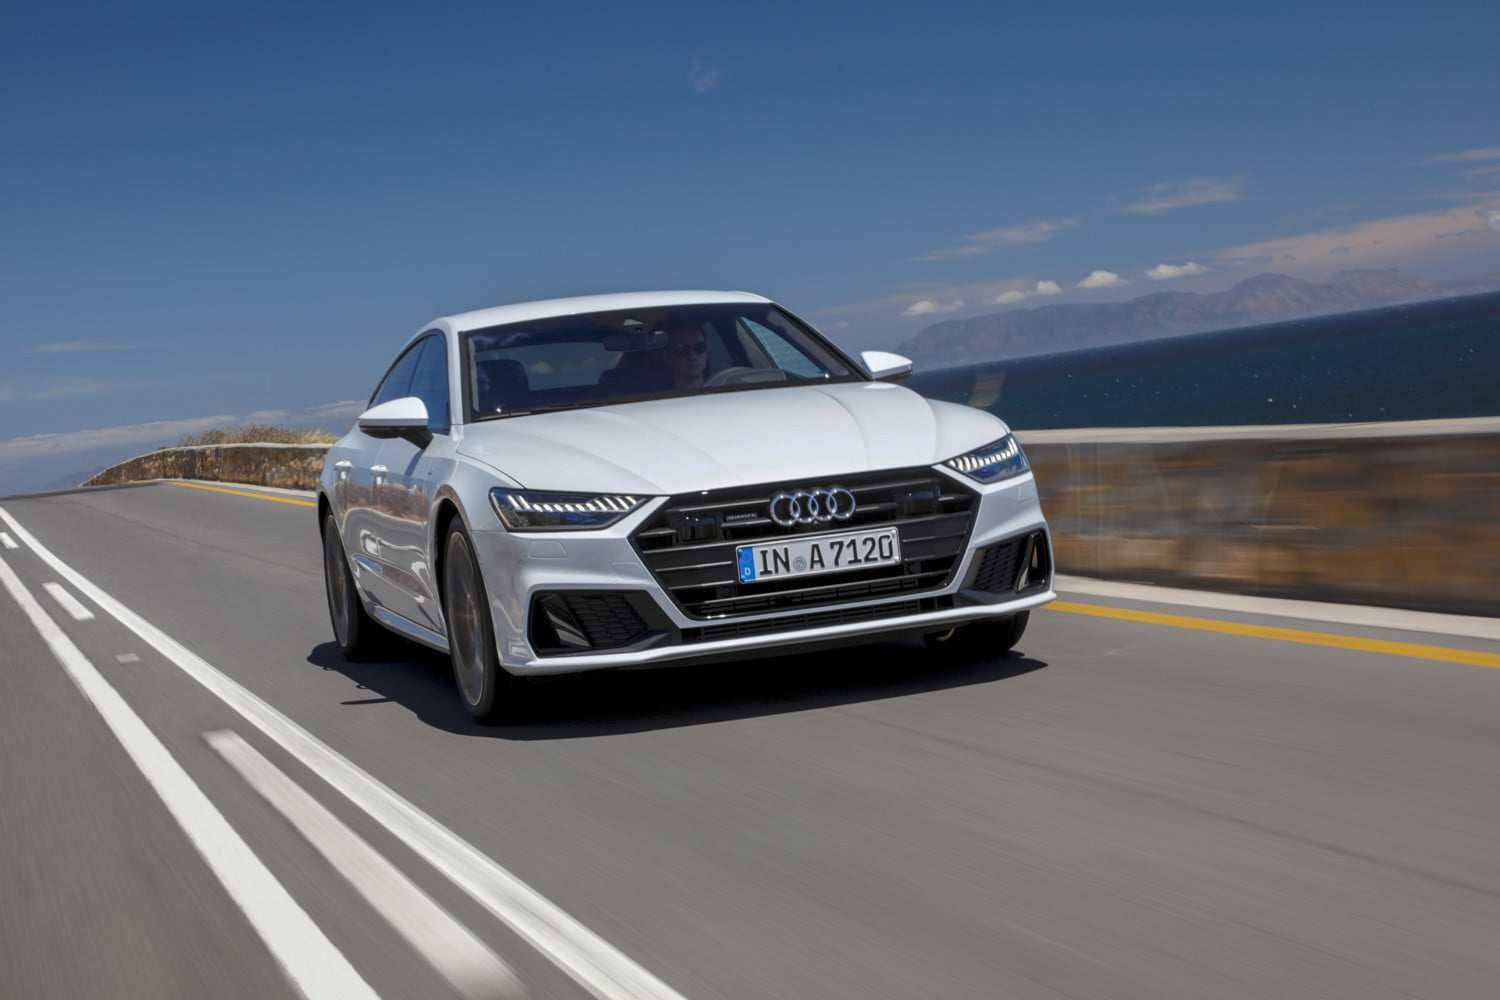 68 The 2019 Audi A7 0 60 Spesification with 2019 Audi A7 0 60